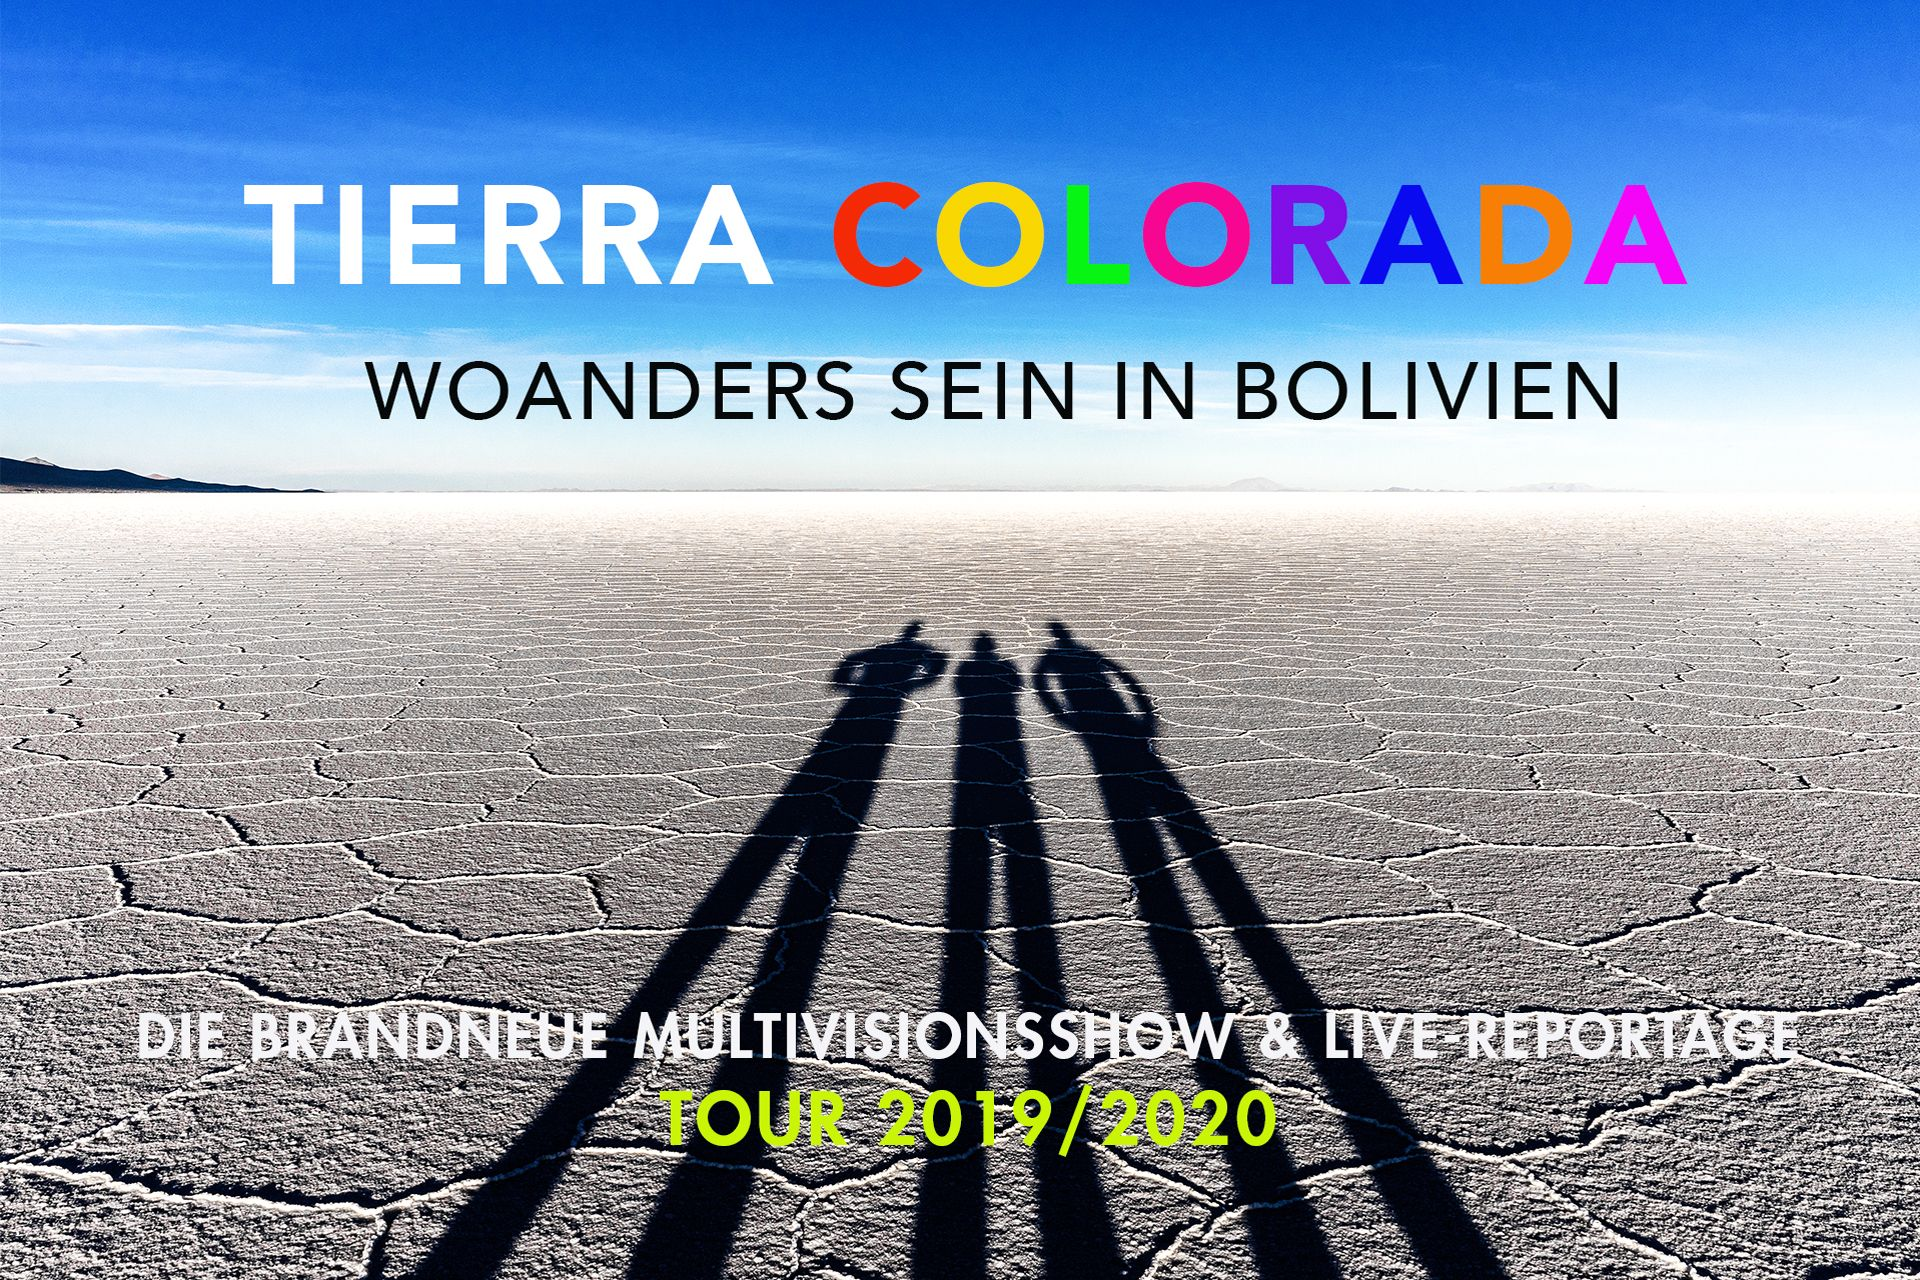 MULTIVISIONSSHOW TIERRA COLORADA - WOANDERS SEIN IN BOLIVIEN